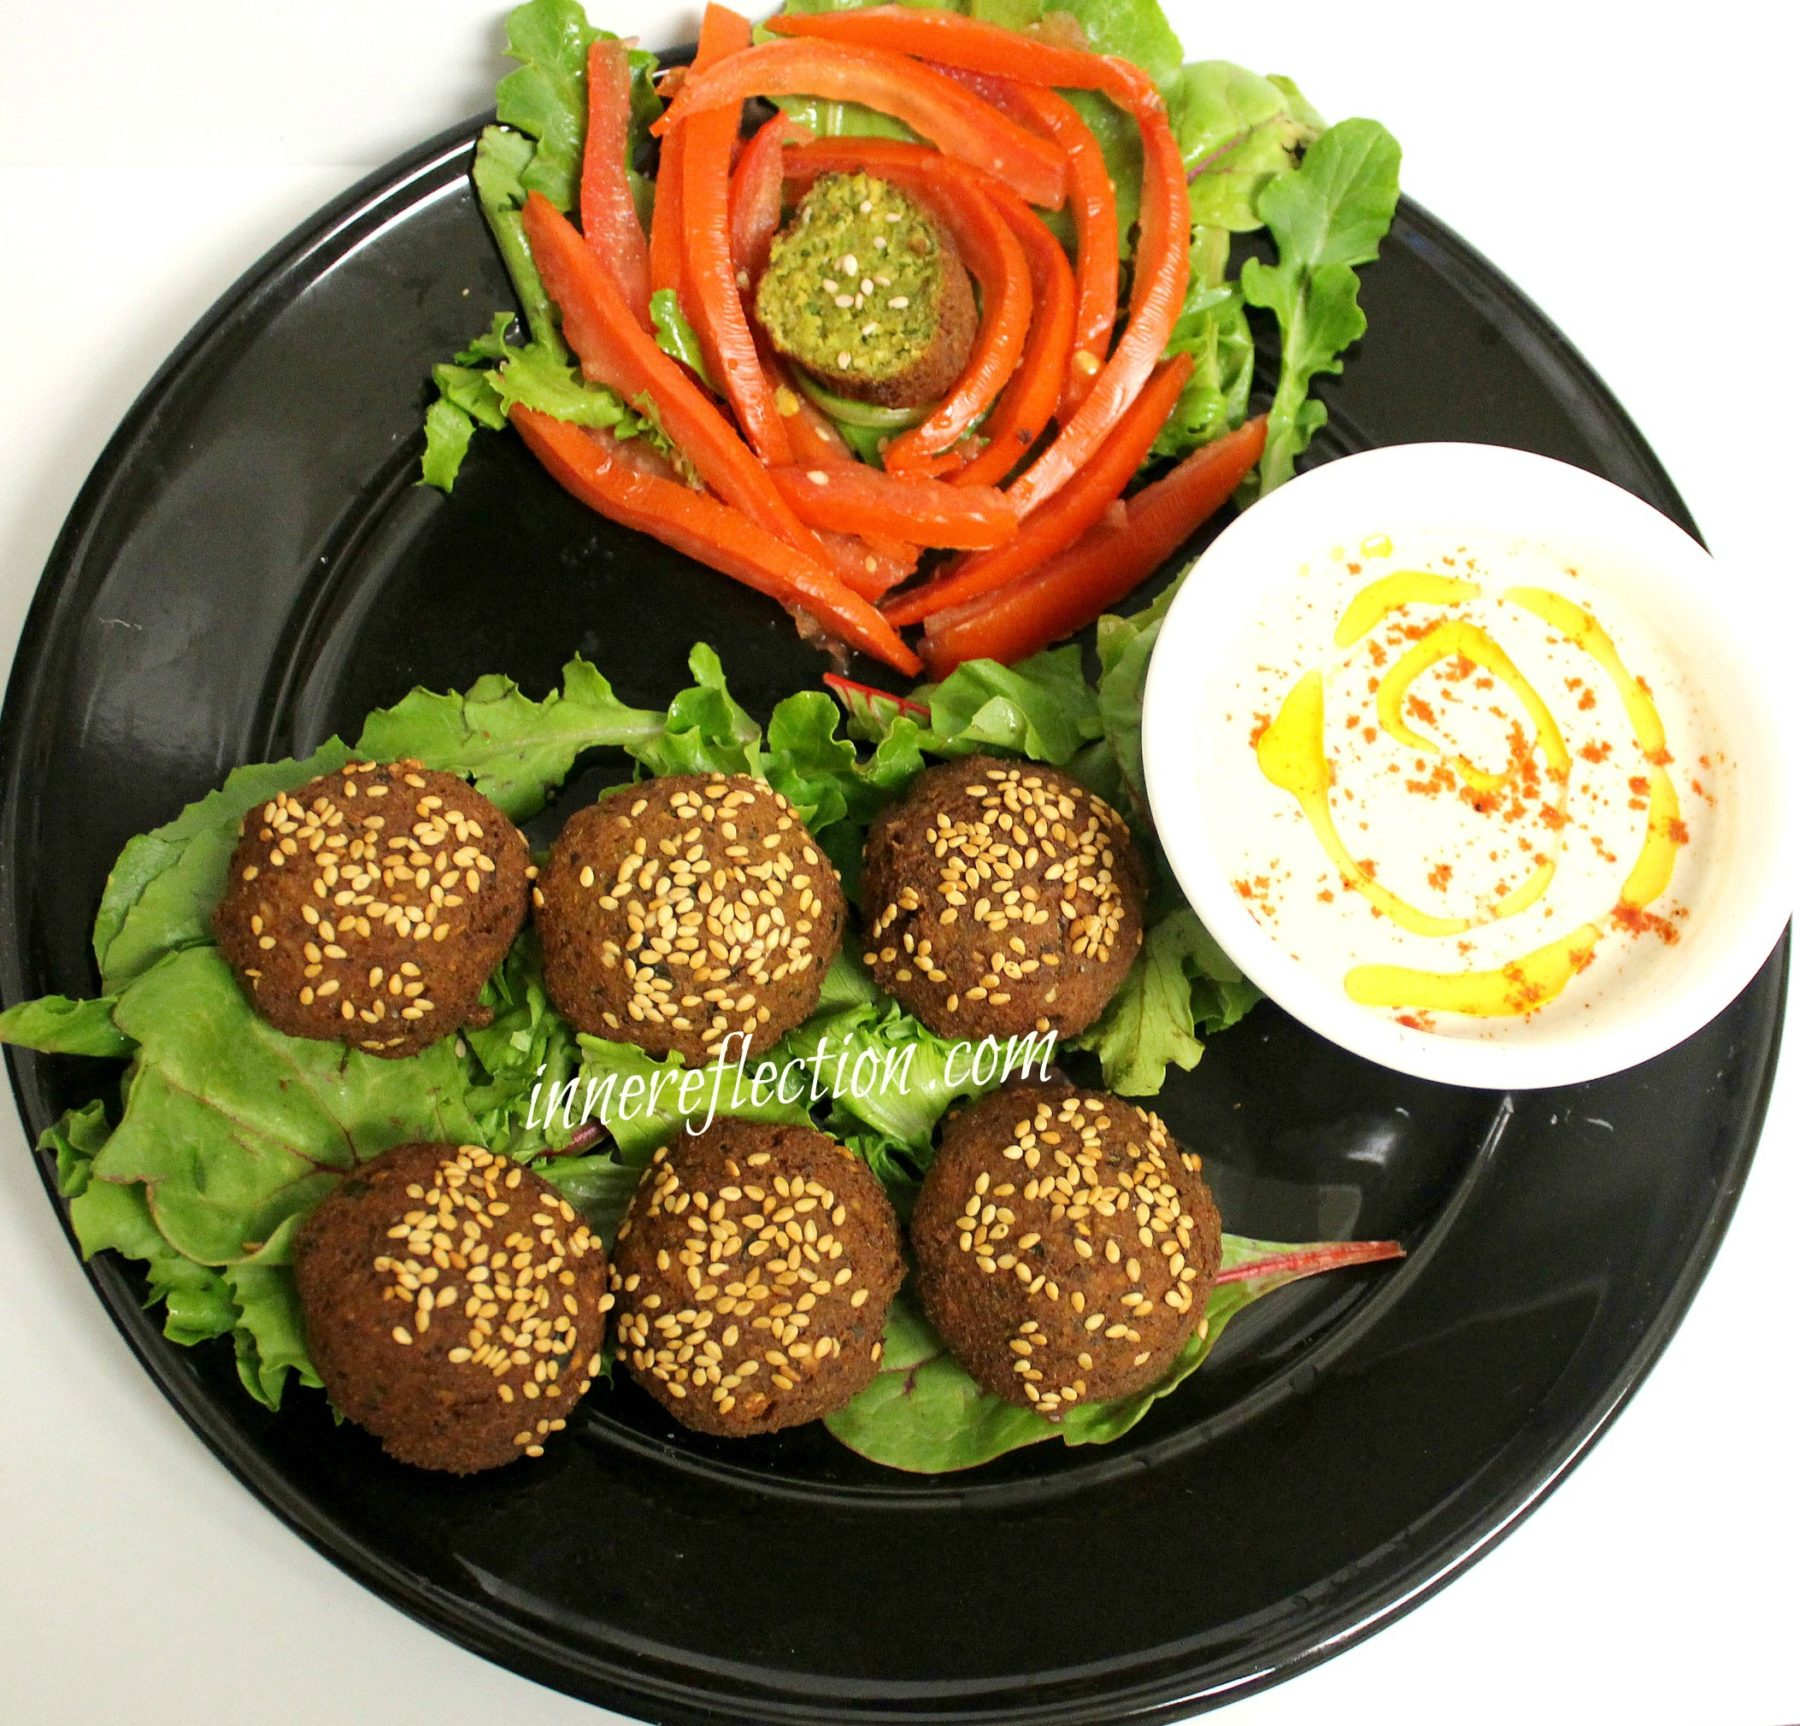 Falafellebanesemiddle easternarabic dishappetizervegetarian check out the recipes for appetizers salads main courses chutneys pickles and desserts on my blog forumfinder Image collections